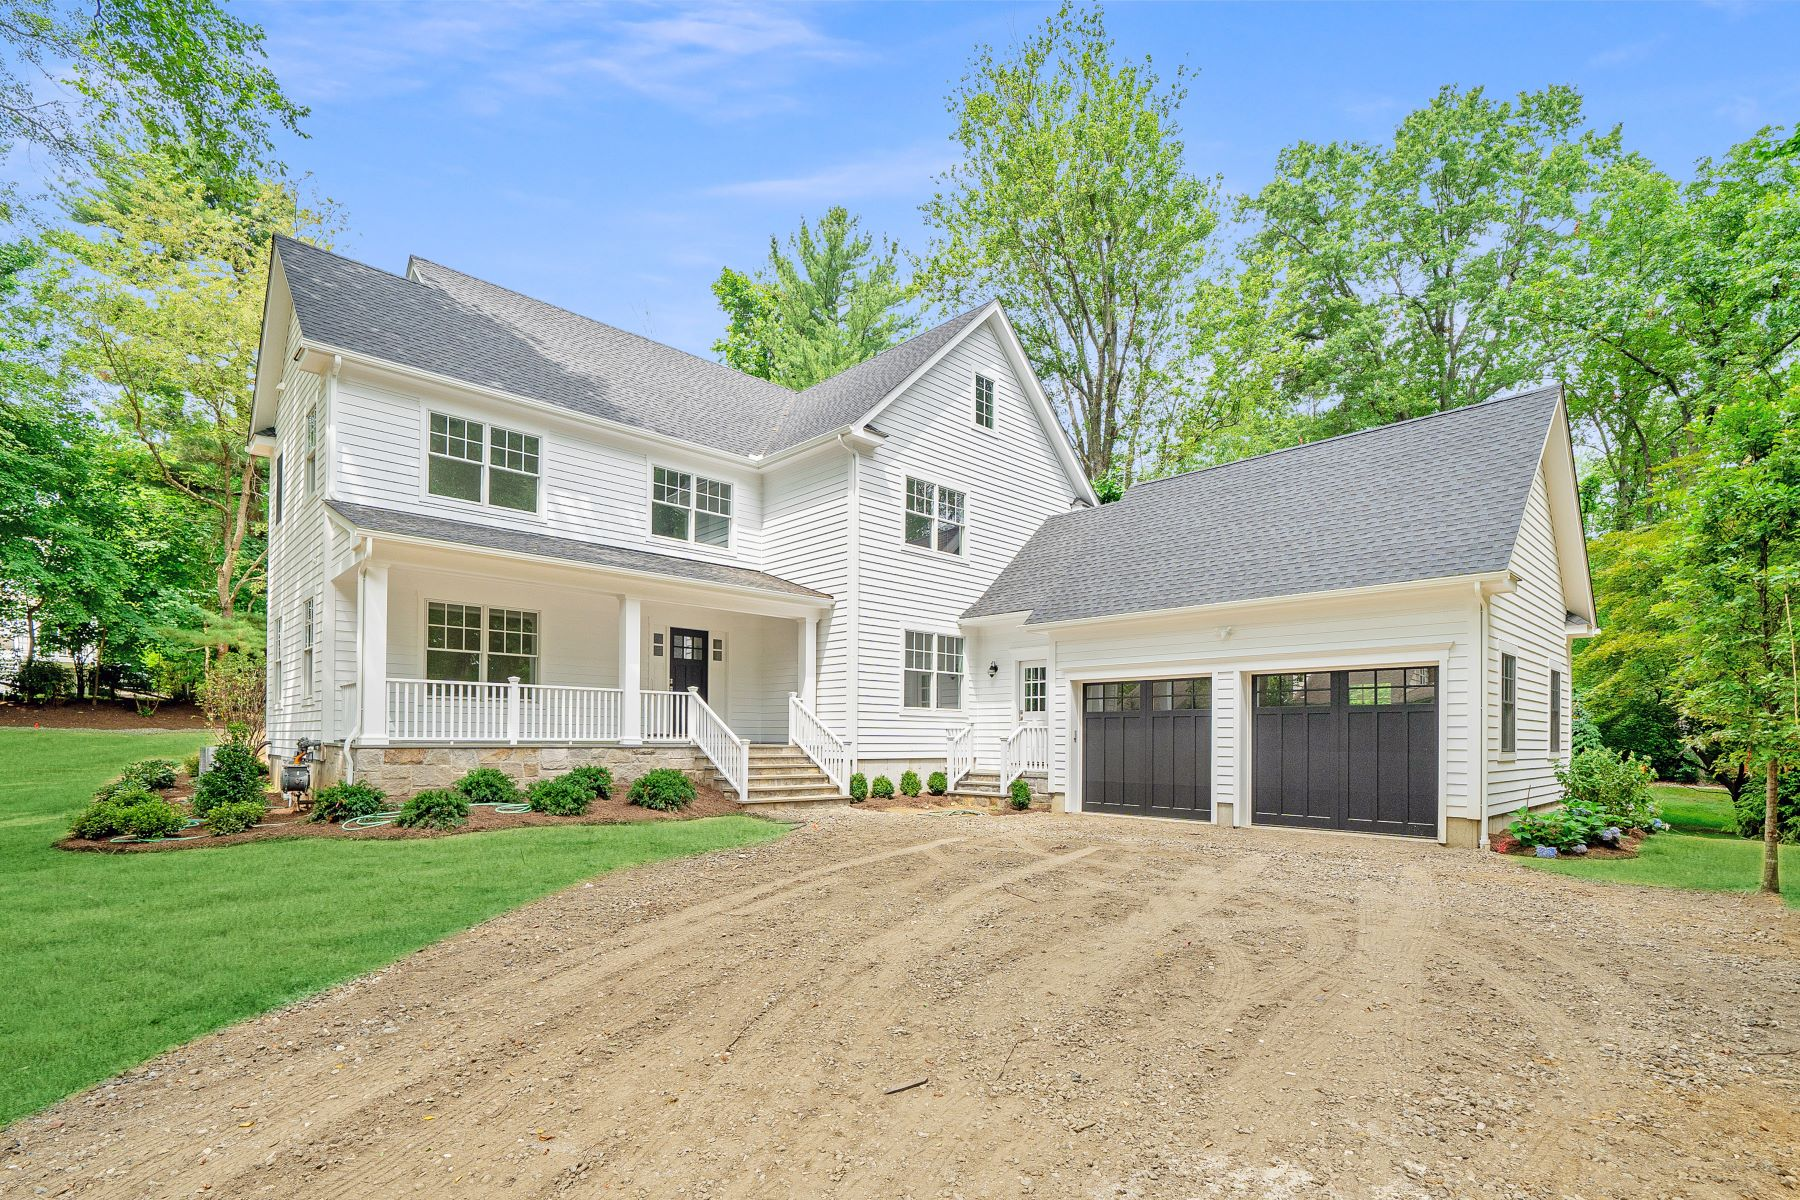 Single Family Homes for Active at A Modern Take on a Traditional Farm House! 42 Crossway Scarsdale, New York 10583 United States